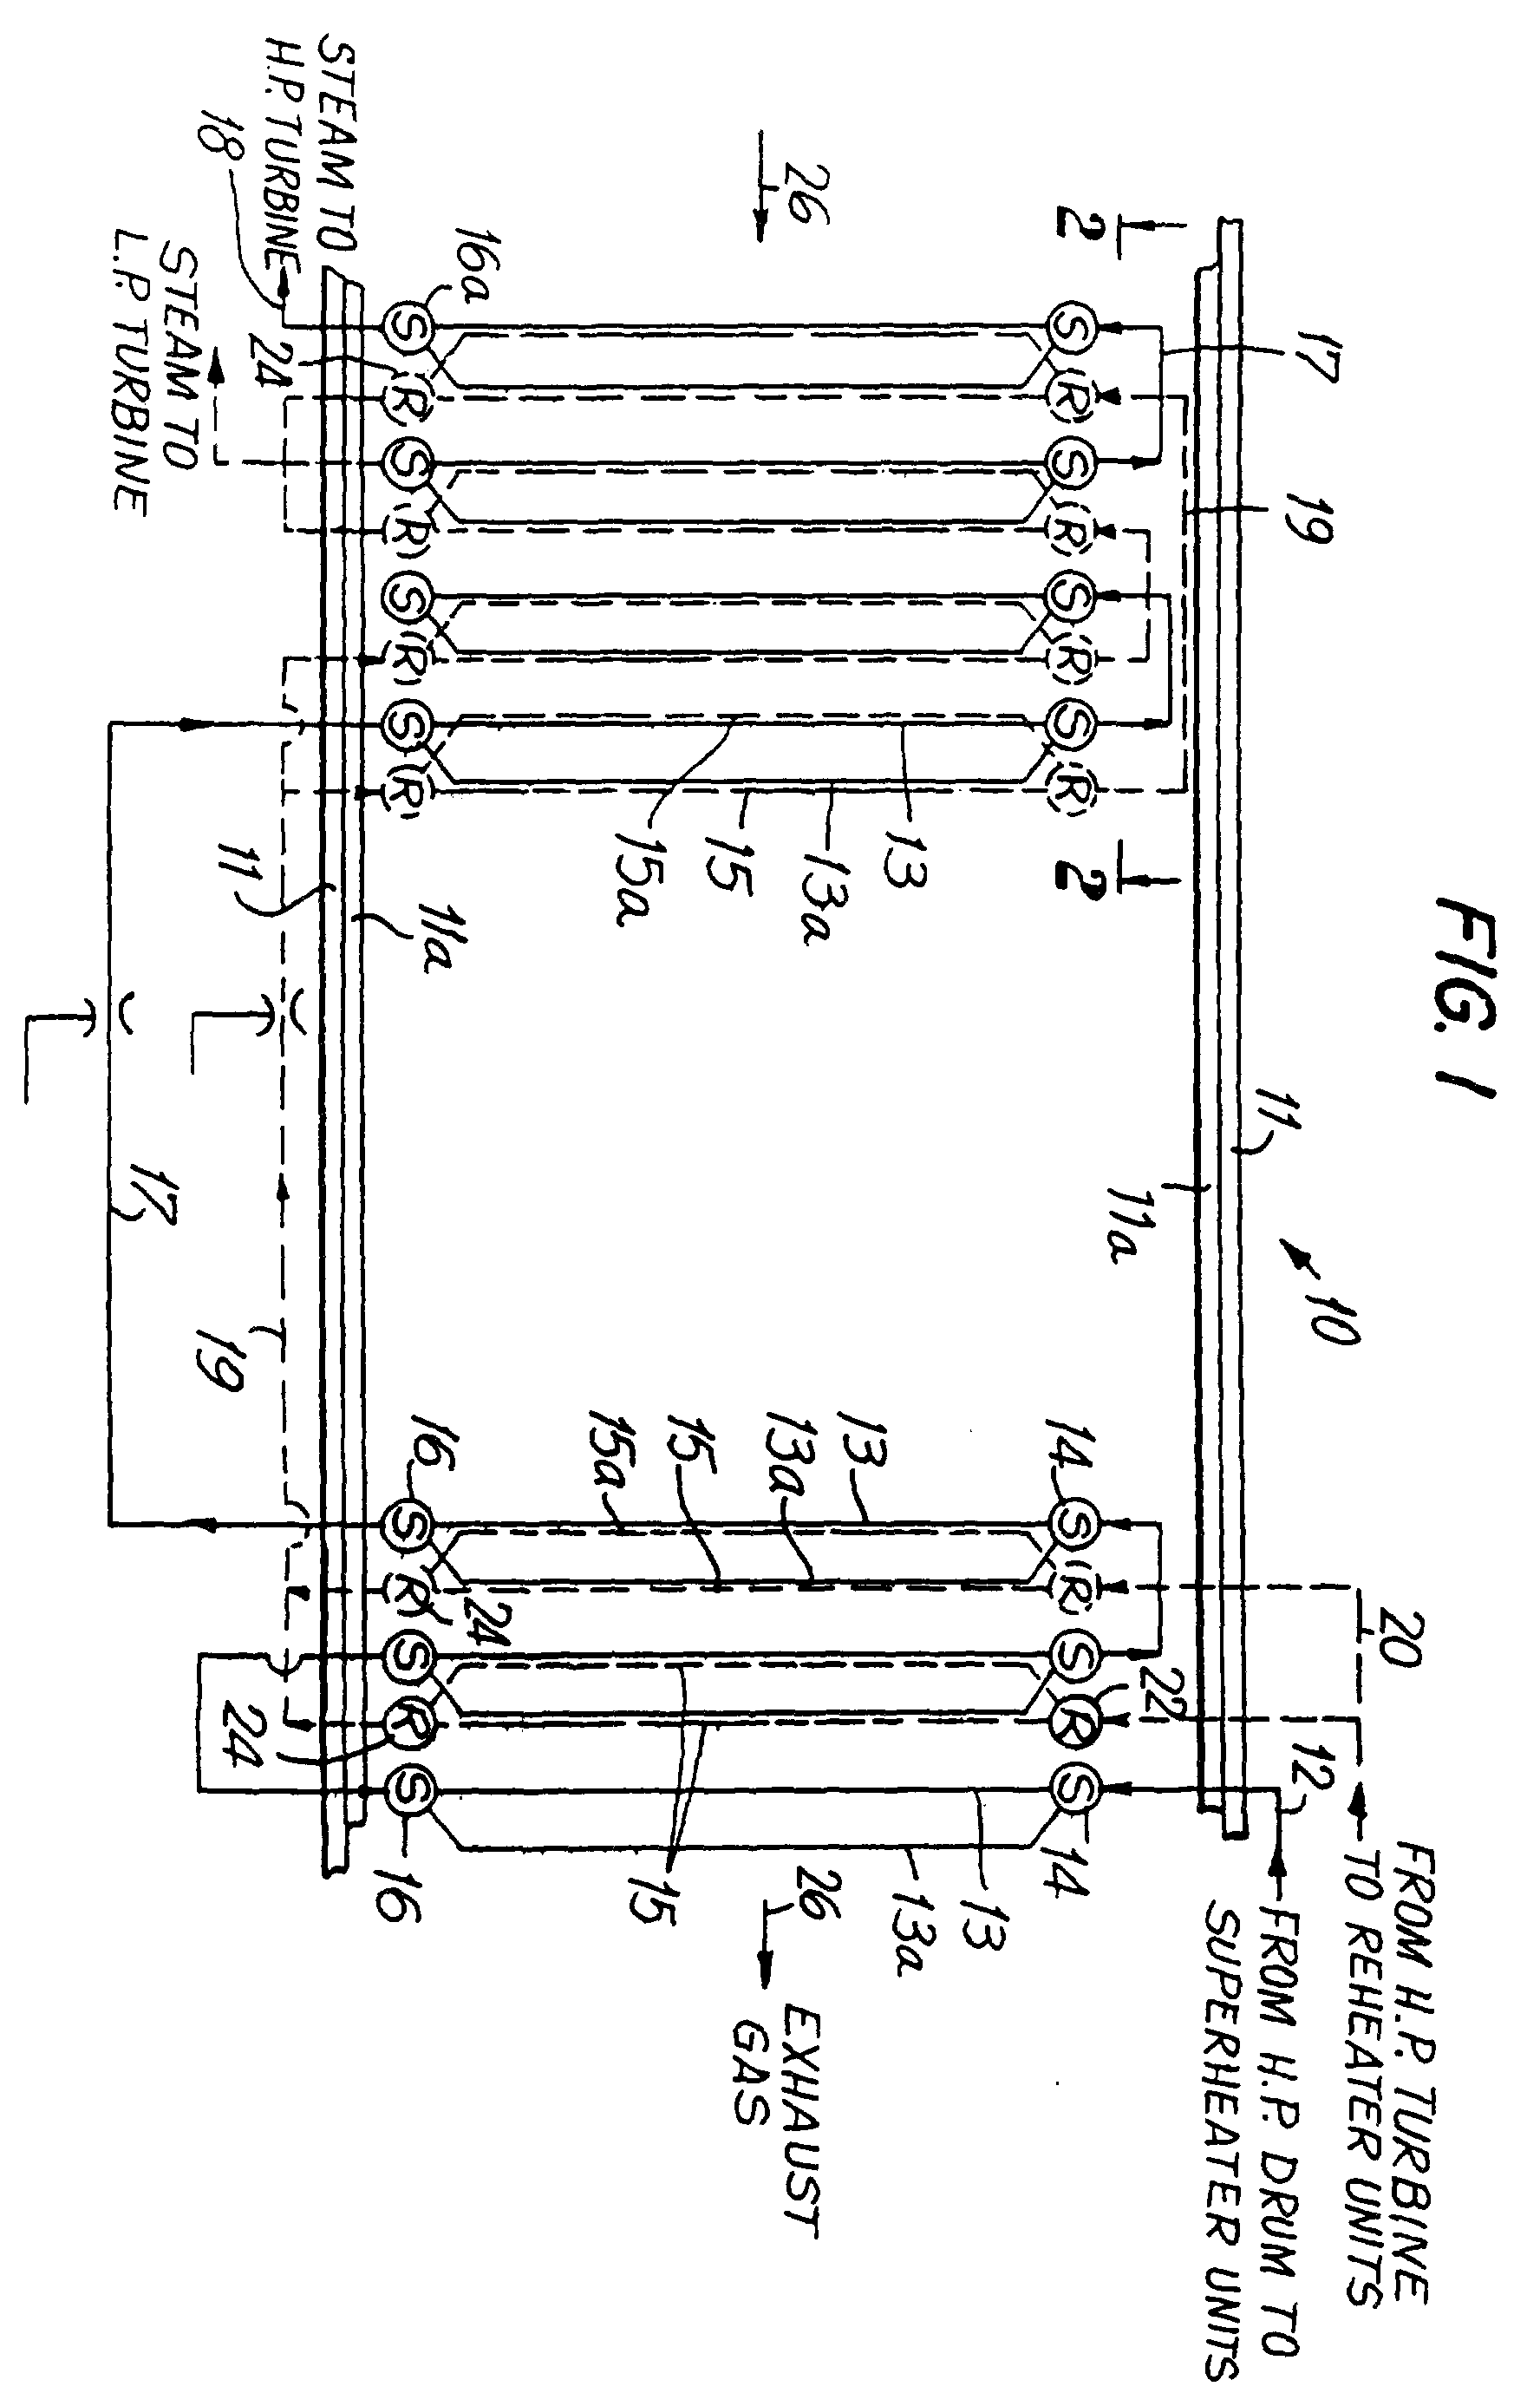 Patent EP B1 Superheater and reheater tube arrangement for